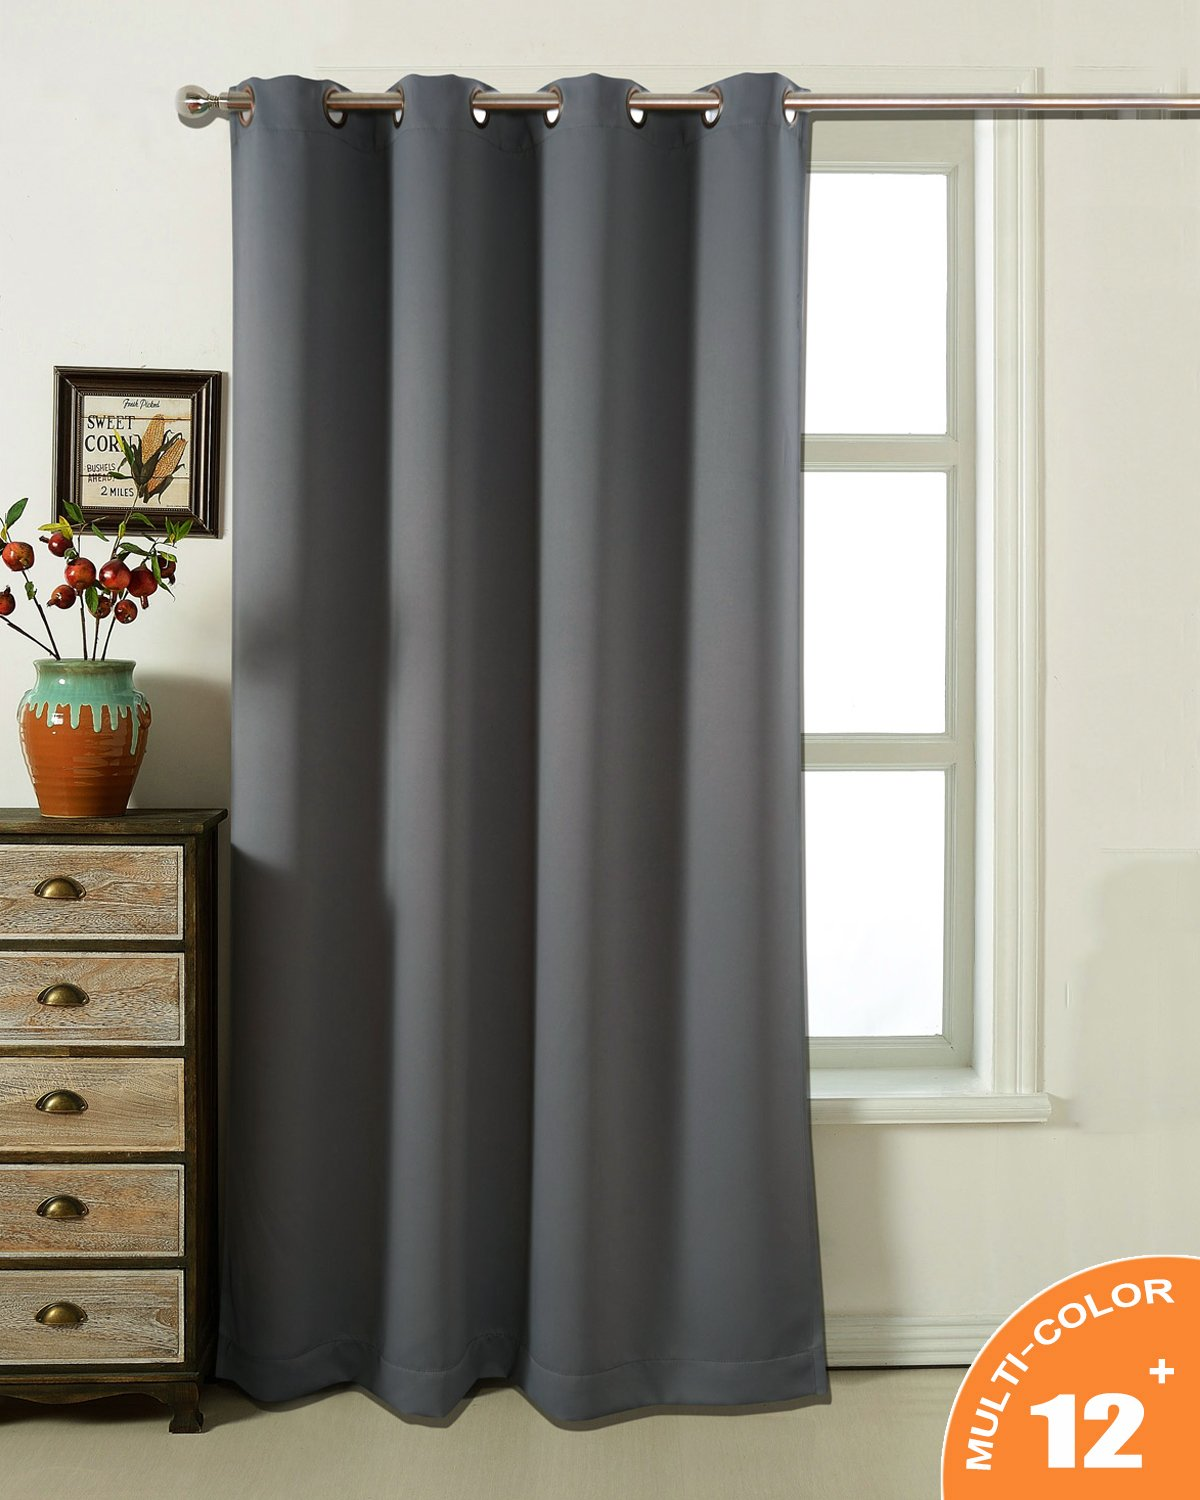 How to choose wall curtain rods for curtains